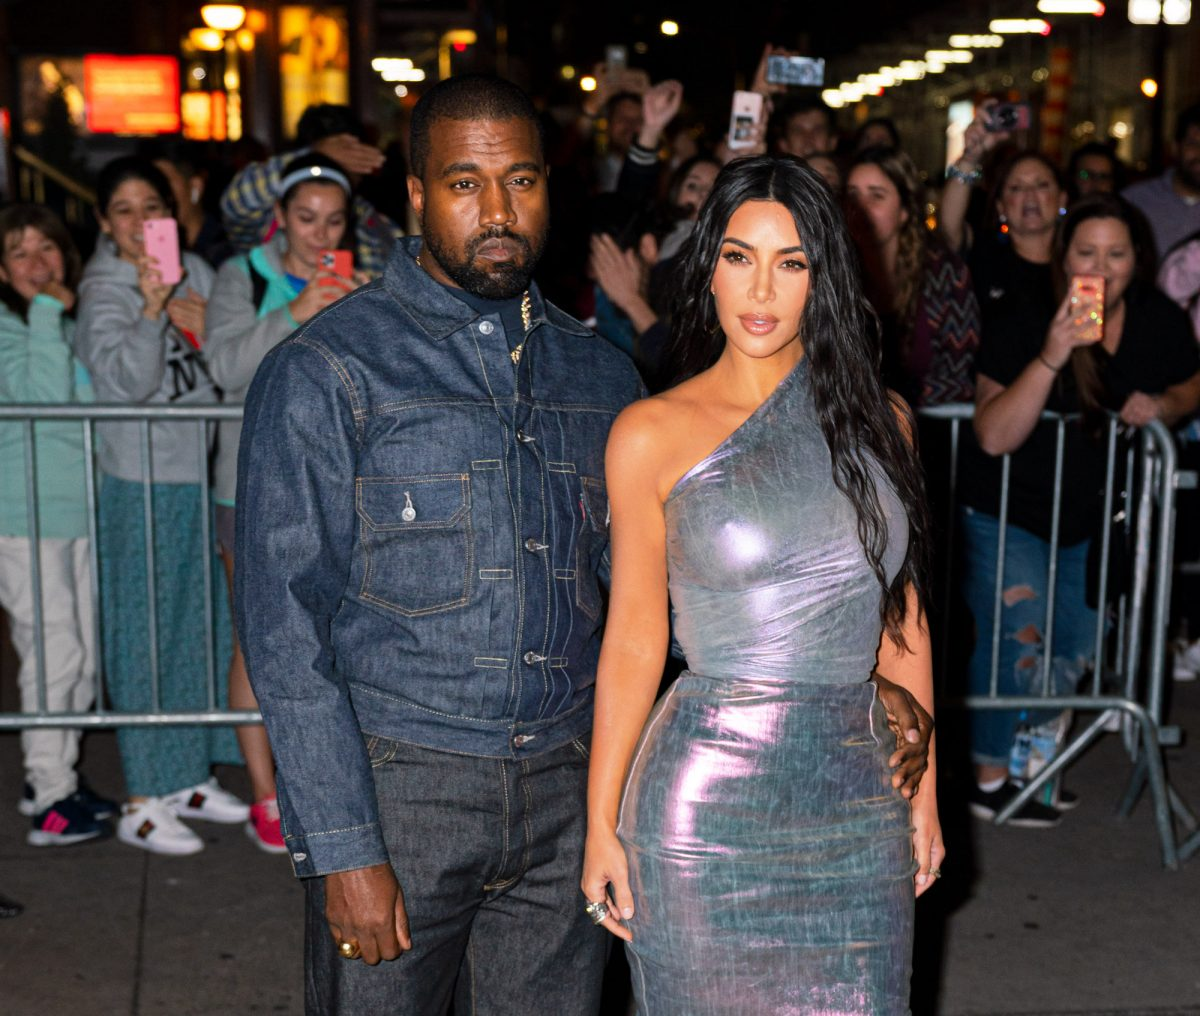 Kanye West and Kim Kardashian West attending the  FGI 36th Annual Night of Stars Gala in 2019